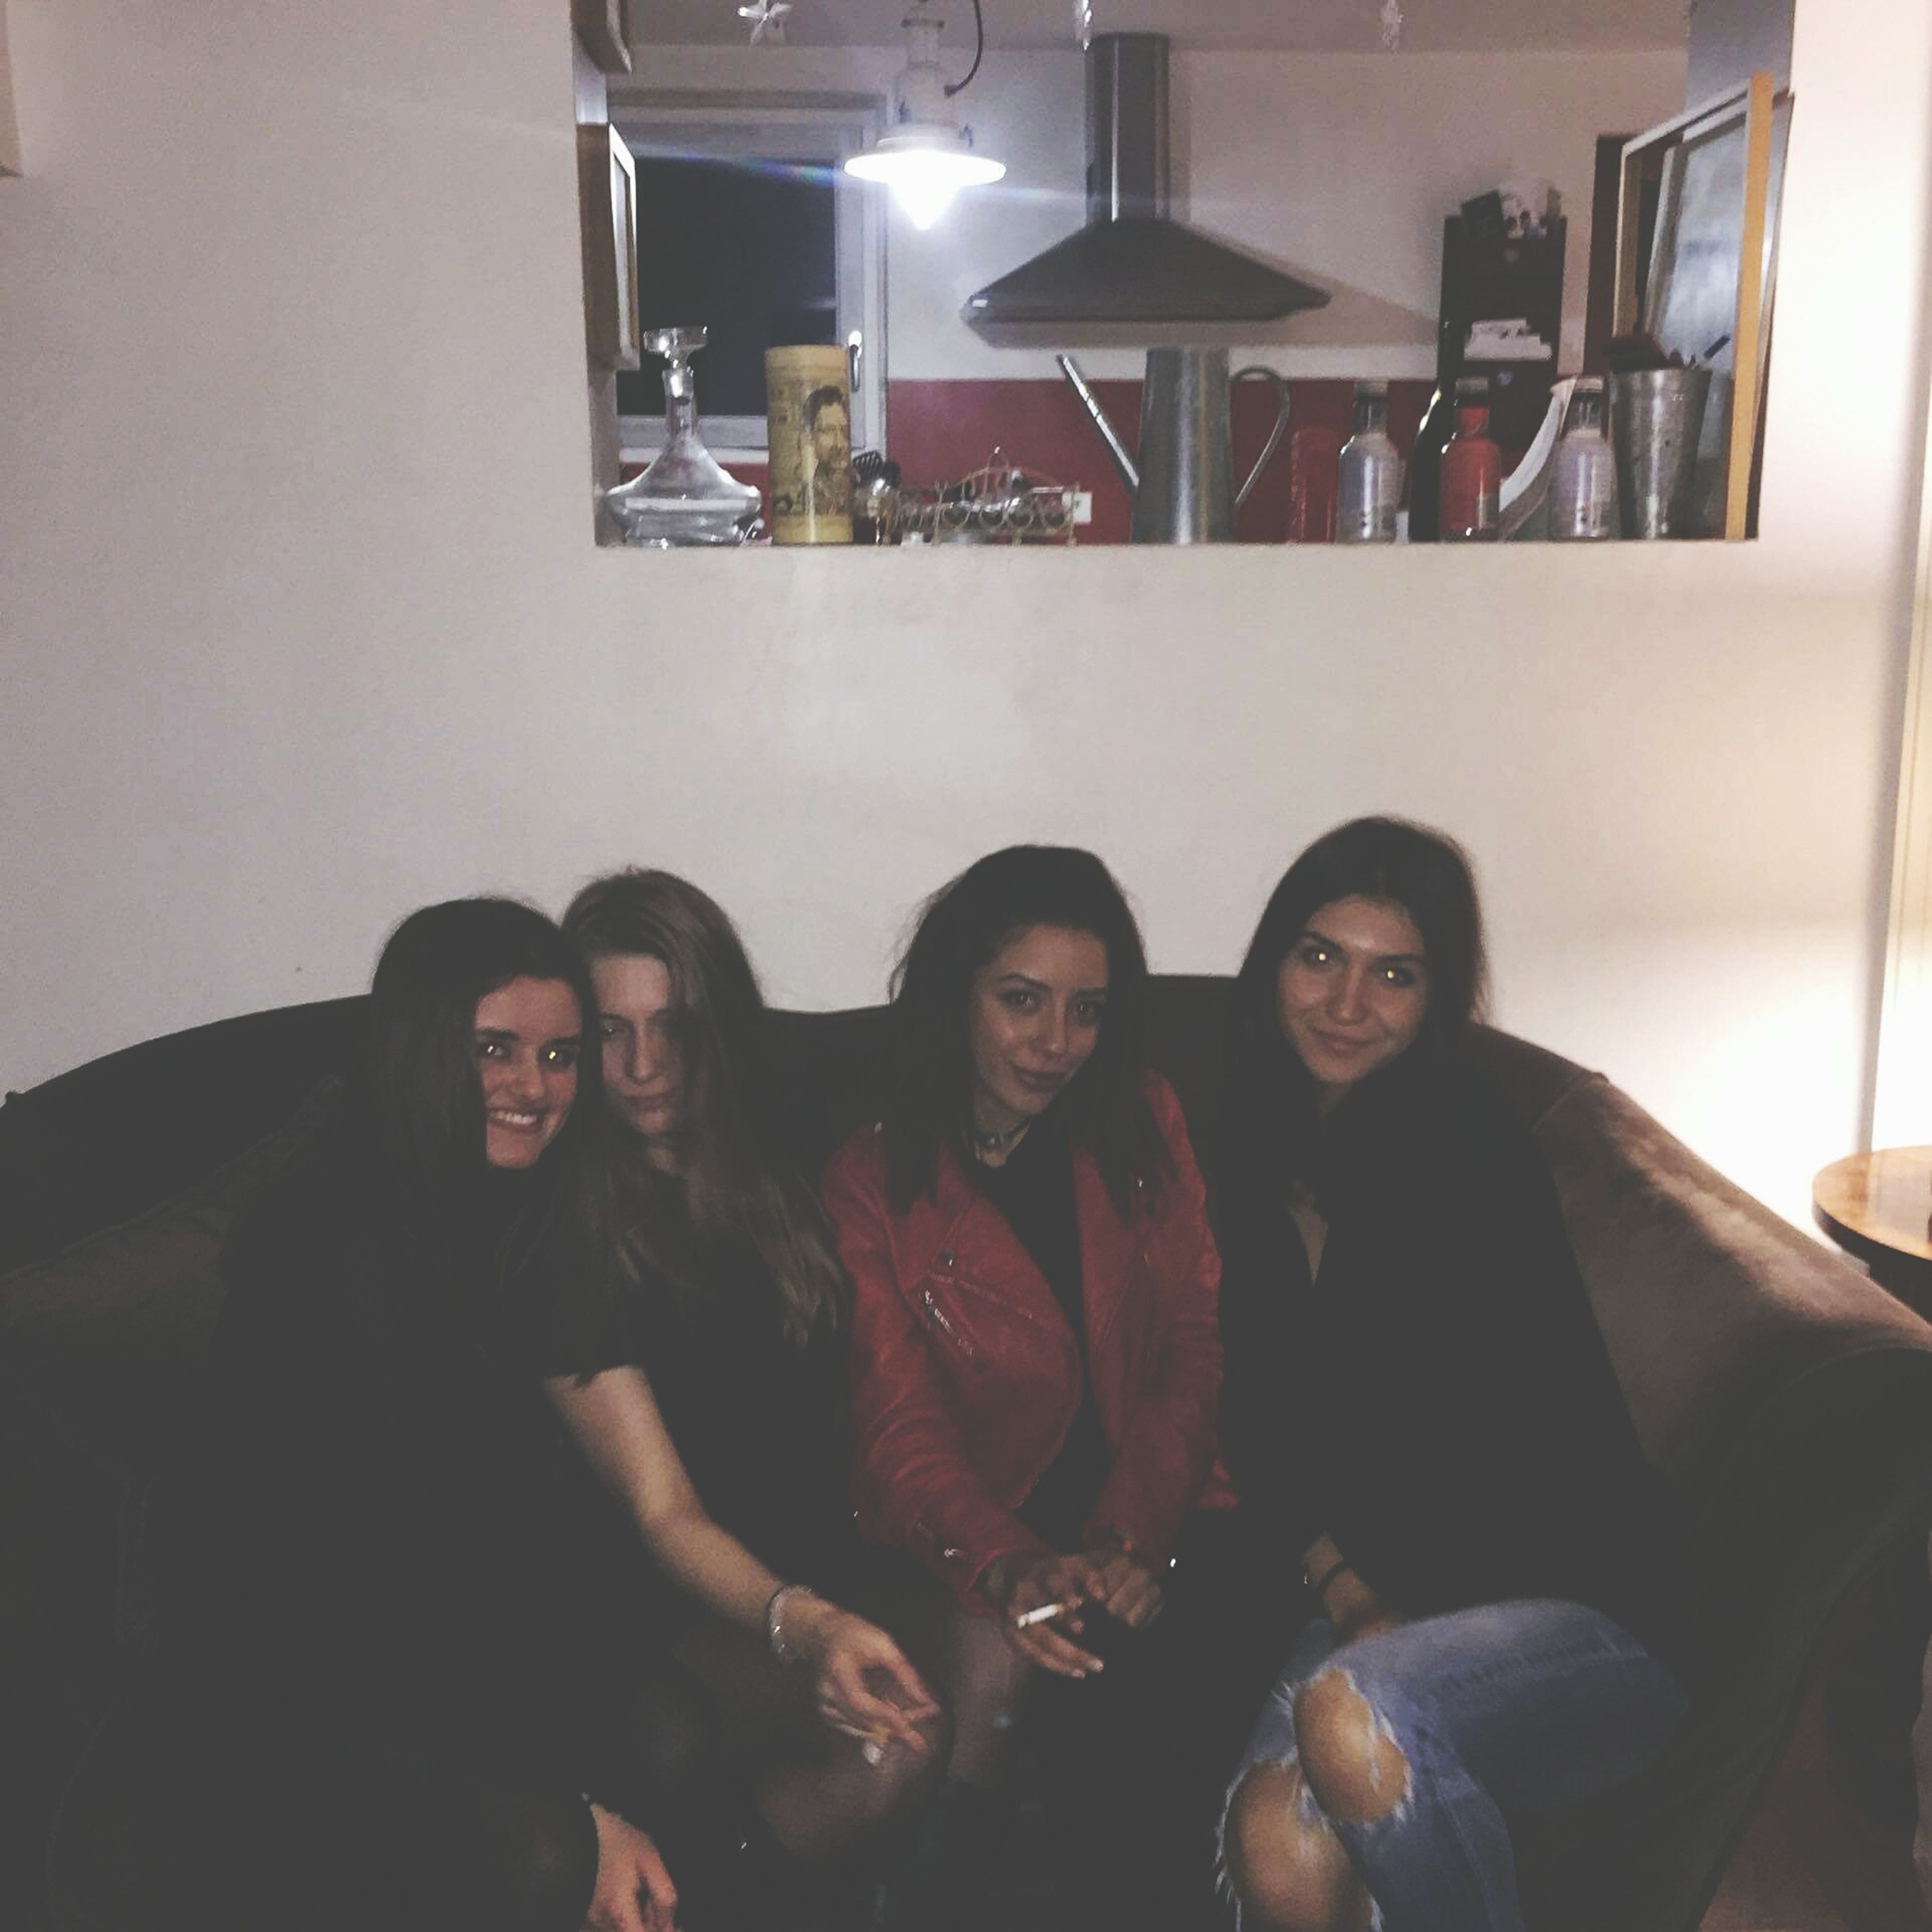 indoors, lifestyles, illuminated, night, leisure activity, friendship, smiling, movie, nightlife, sitting, real people, happiness, portrait, adults only, young adult, people, young women, film industry, togetherness, adult, happy hour